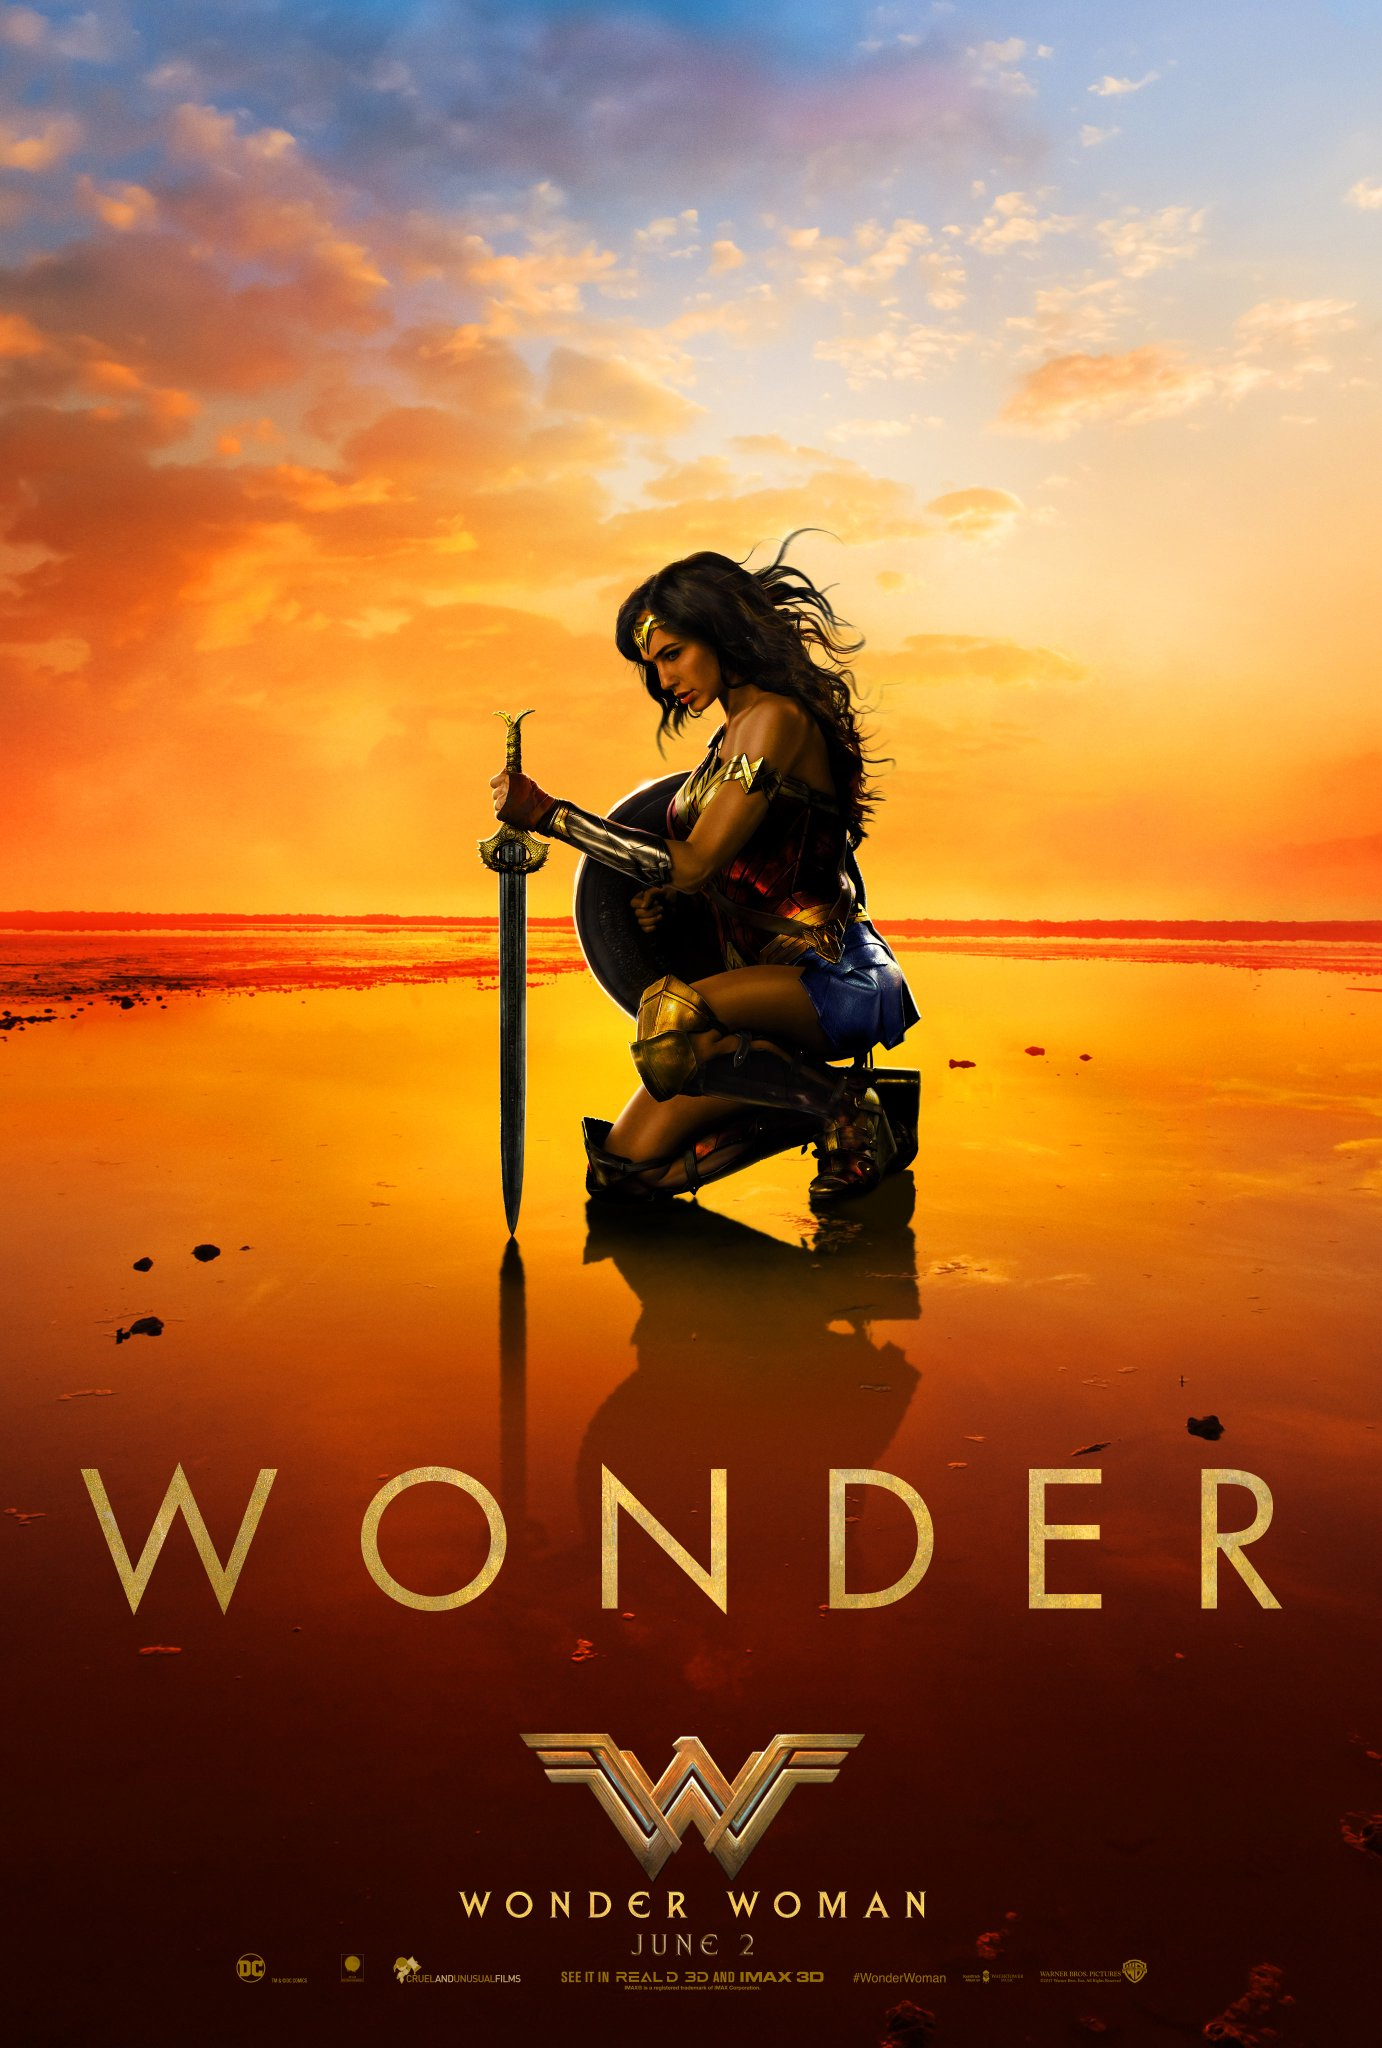 Gal Gadot Shares New Wonder Woman Movie Poster